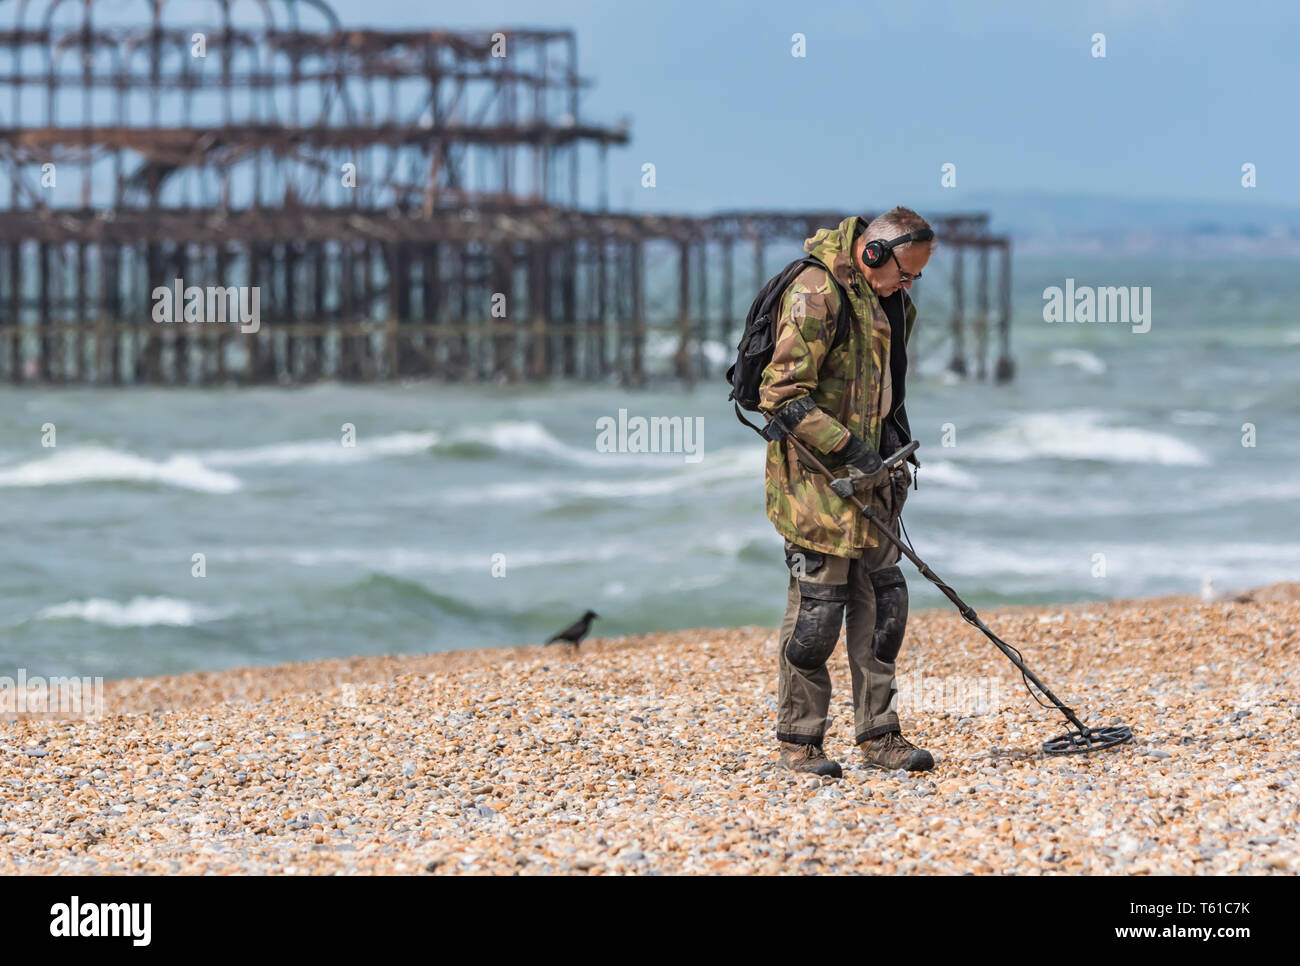 Man searching for treasure on a beach using a metal detector in Brighton, East Sussex, England, UK. - Stock Image